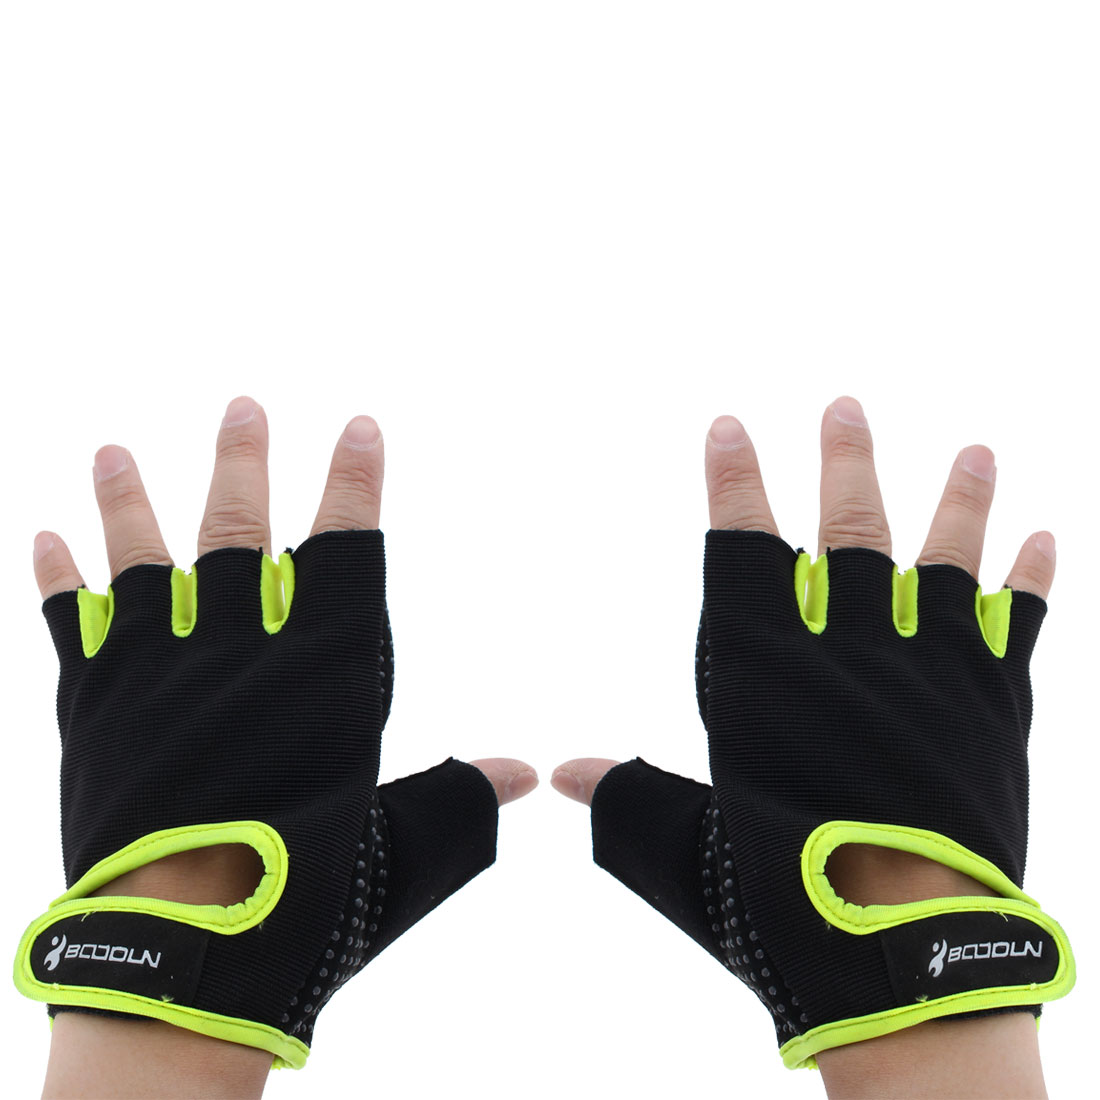 BOODUN Authorized Exercise Weight Biking Lifting Training Microfiber Non-slip Fitness Half Finger Gloves Fluorescent Green L